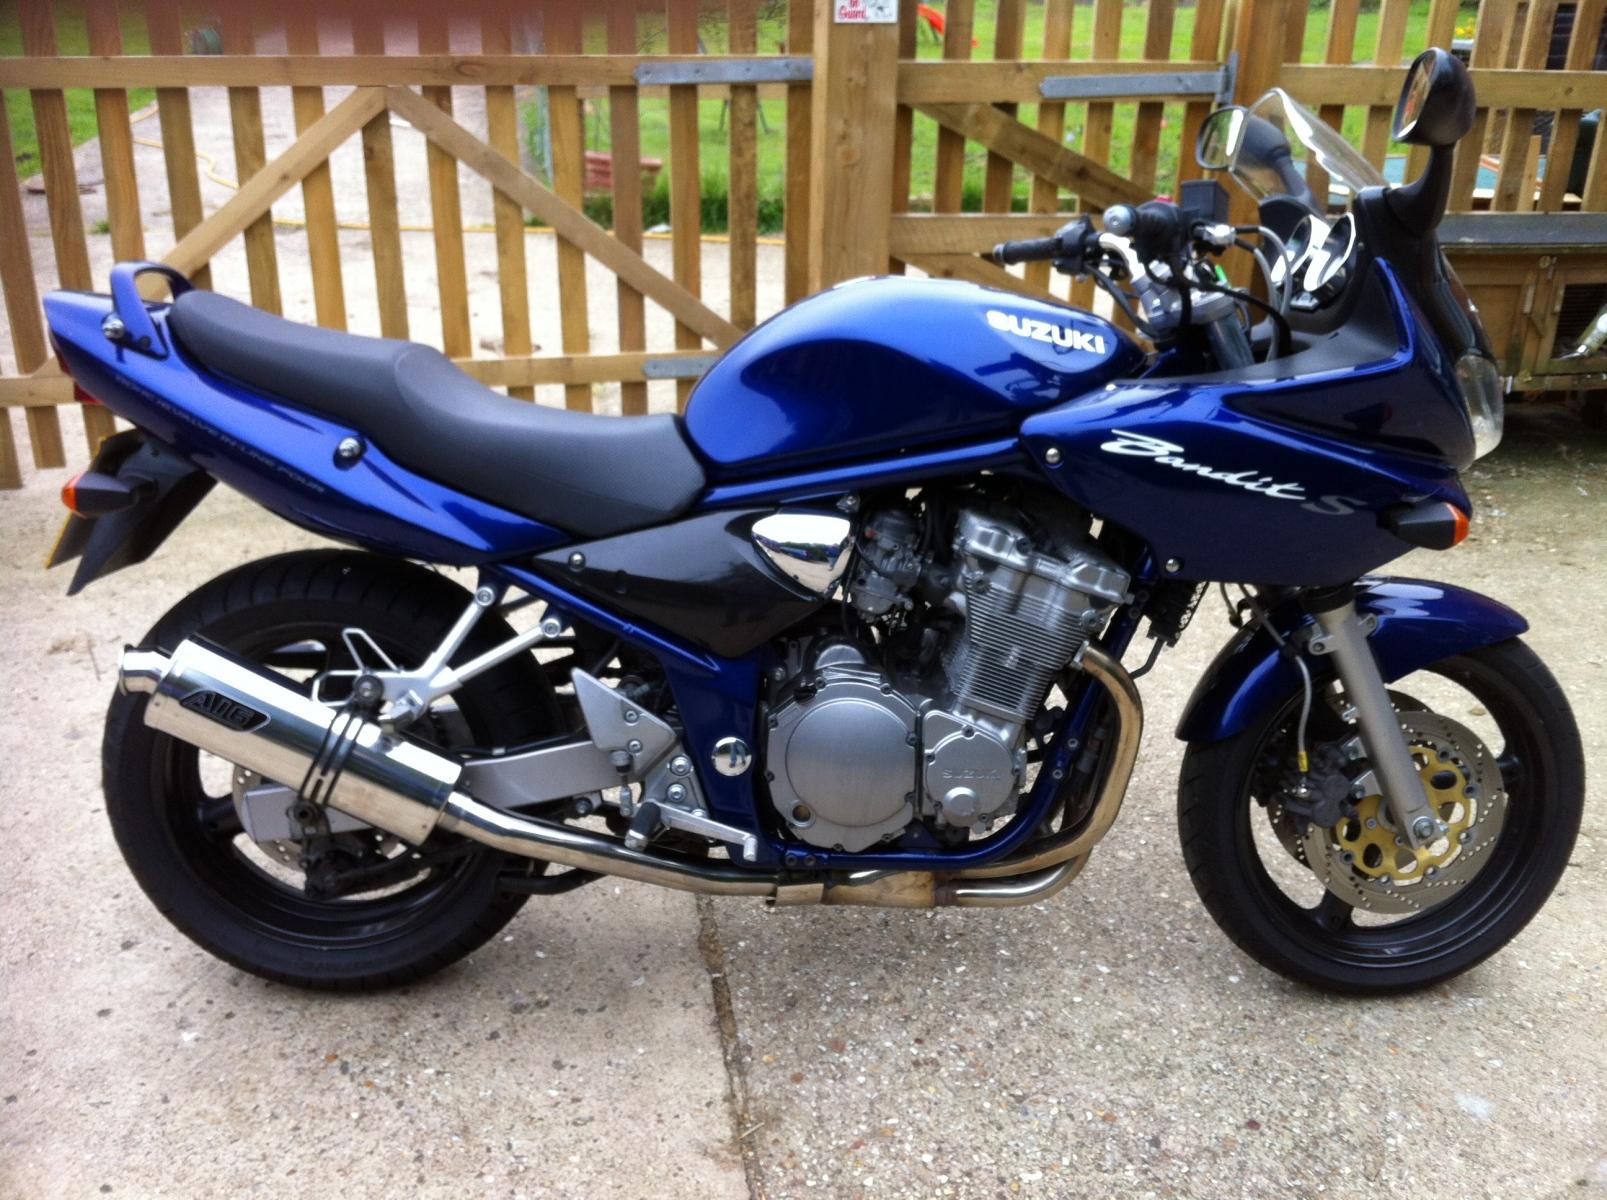 """Suzuki GSF 600 Bandit<p>A16 Road Legal Stainless Exhaust with Traditional Spout</p><br/><a href=""""https://a16roadnracesupplies.co.uk/product/a16-suzuki-exhausts/"""">Buy now!</a>"""